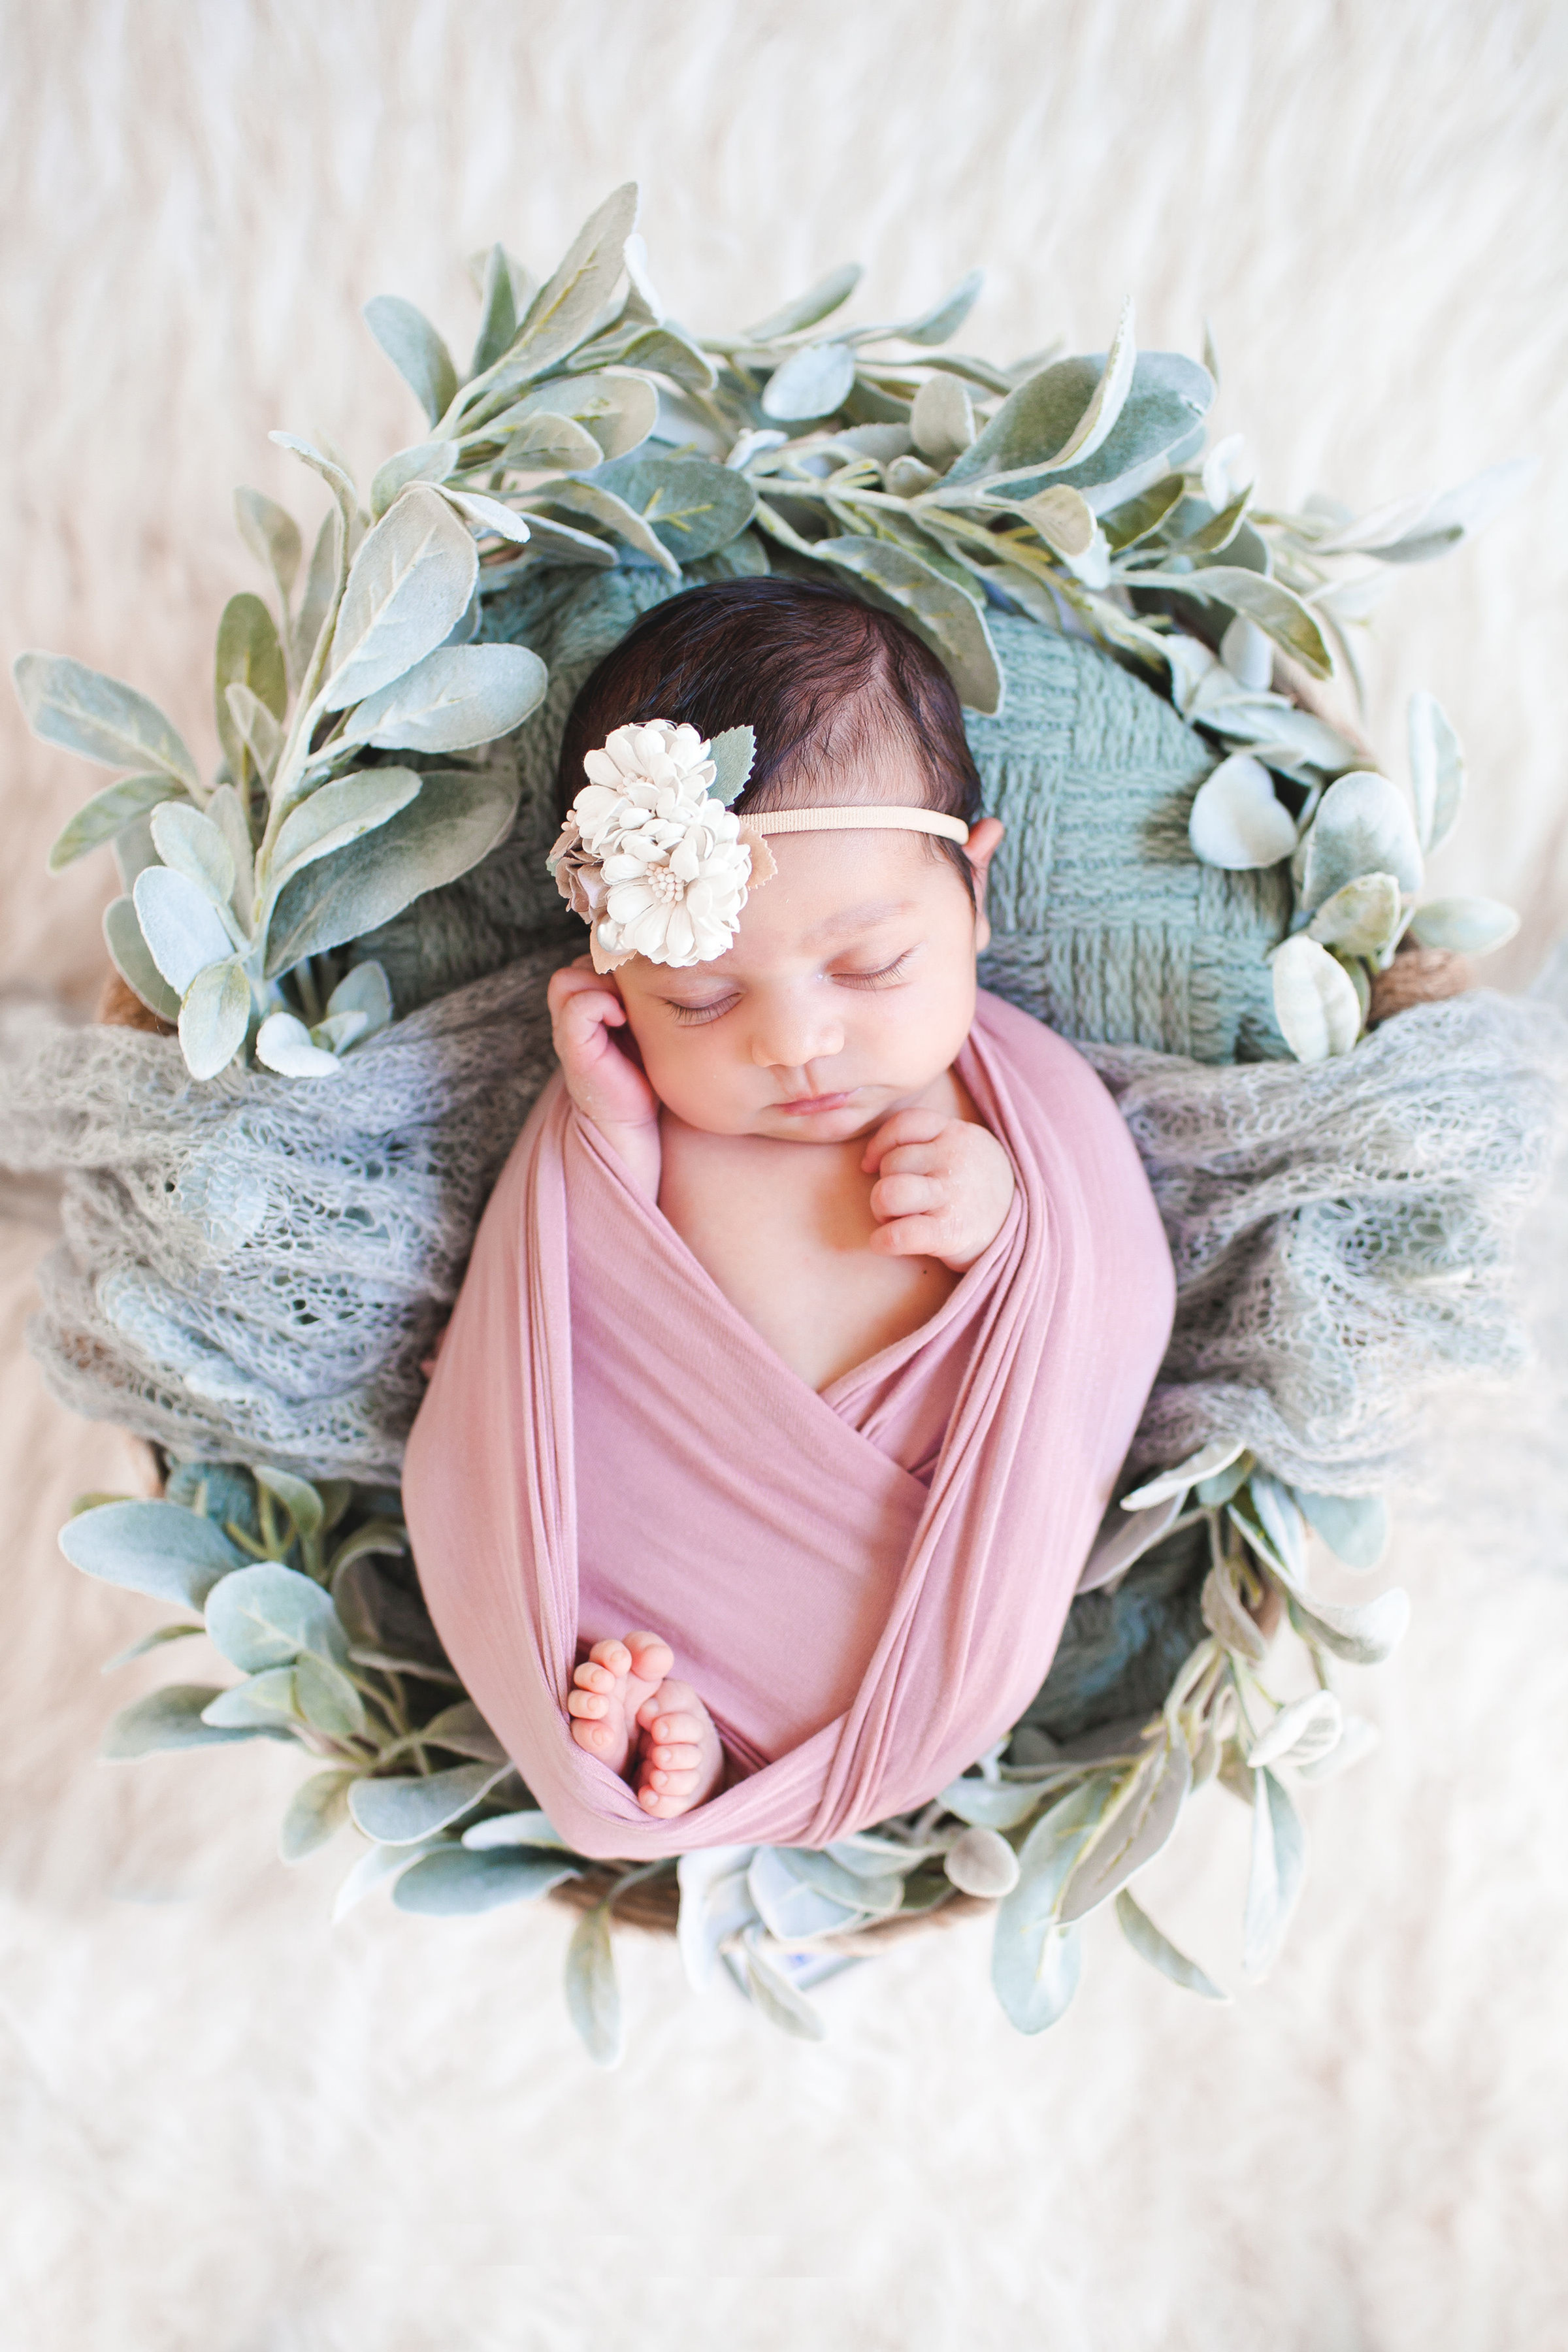 Newborn Photography - Please Email First